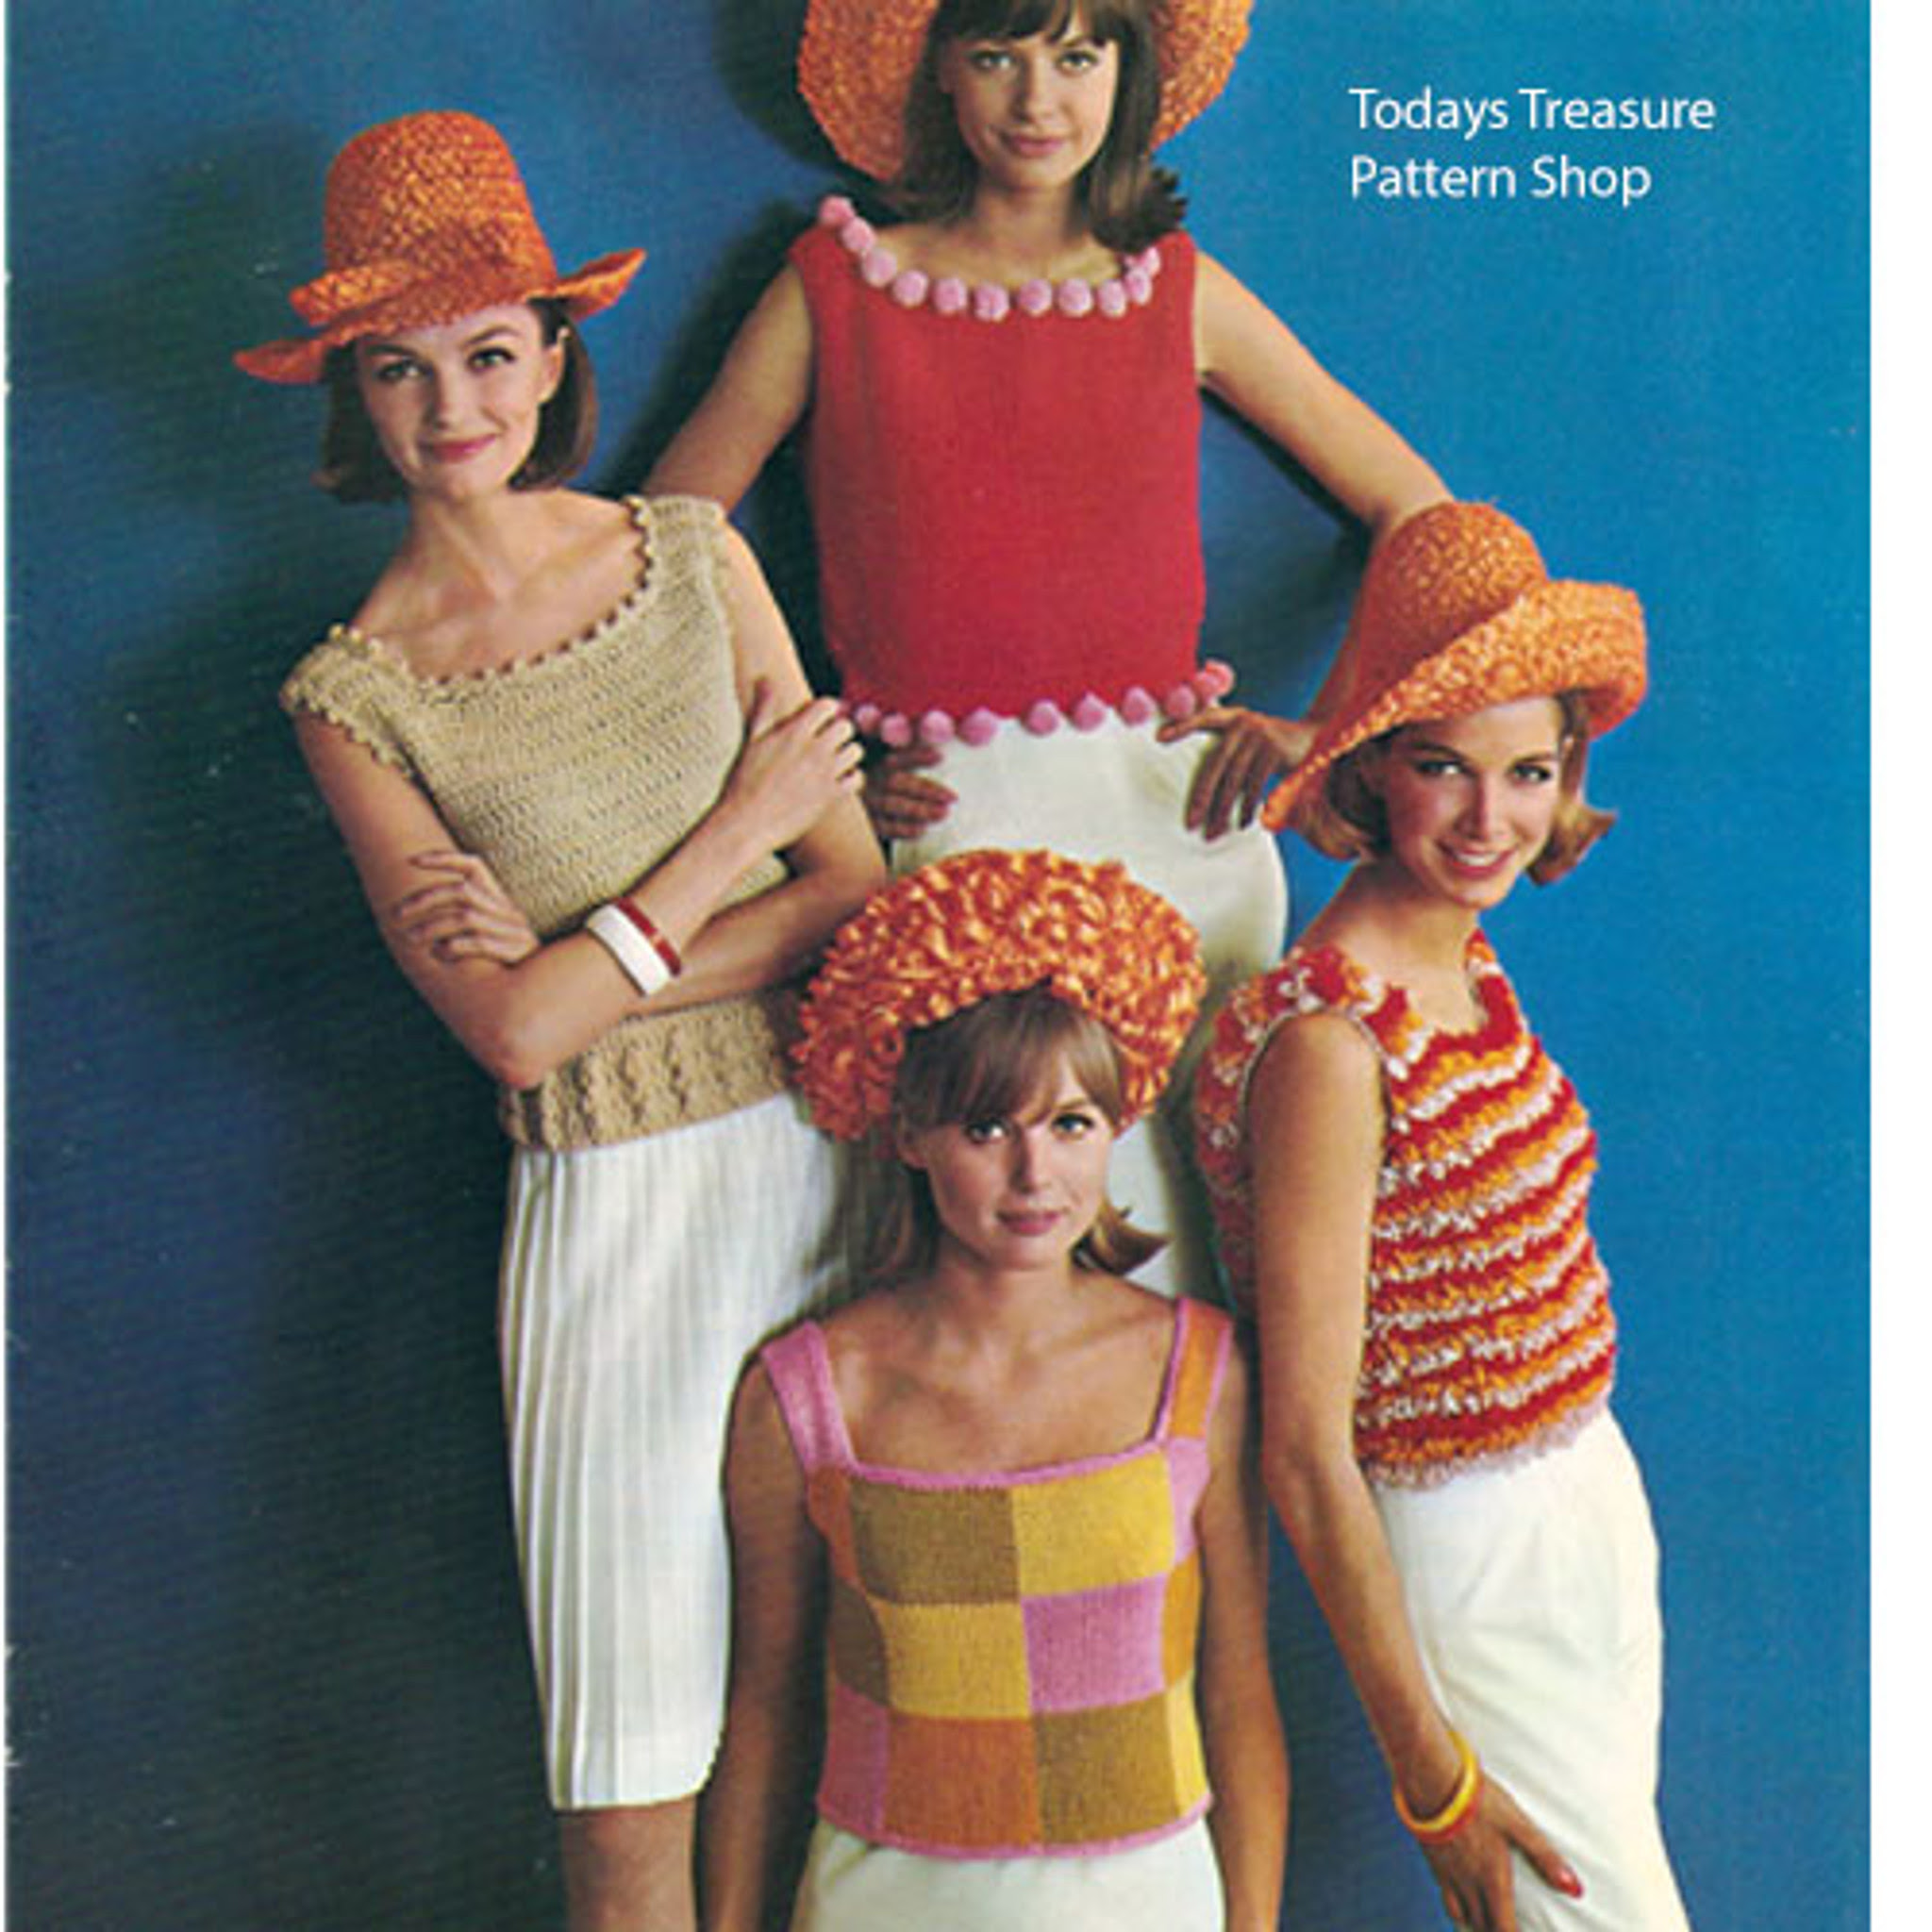 Vintage Shell Crochet Patterns from Columbia Minerva